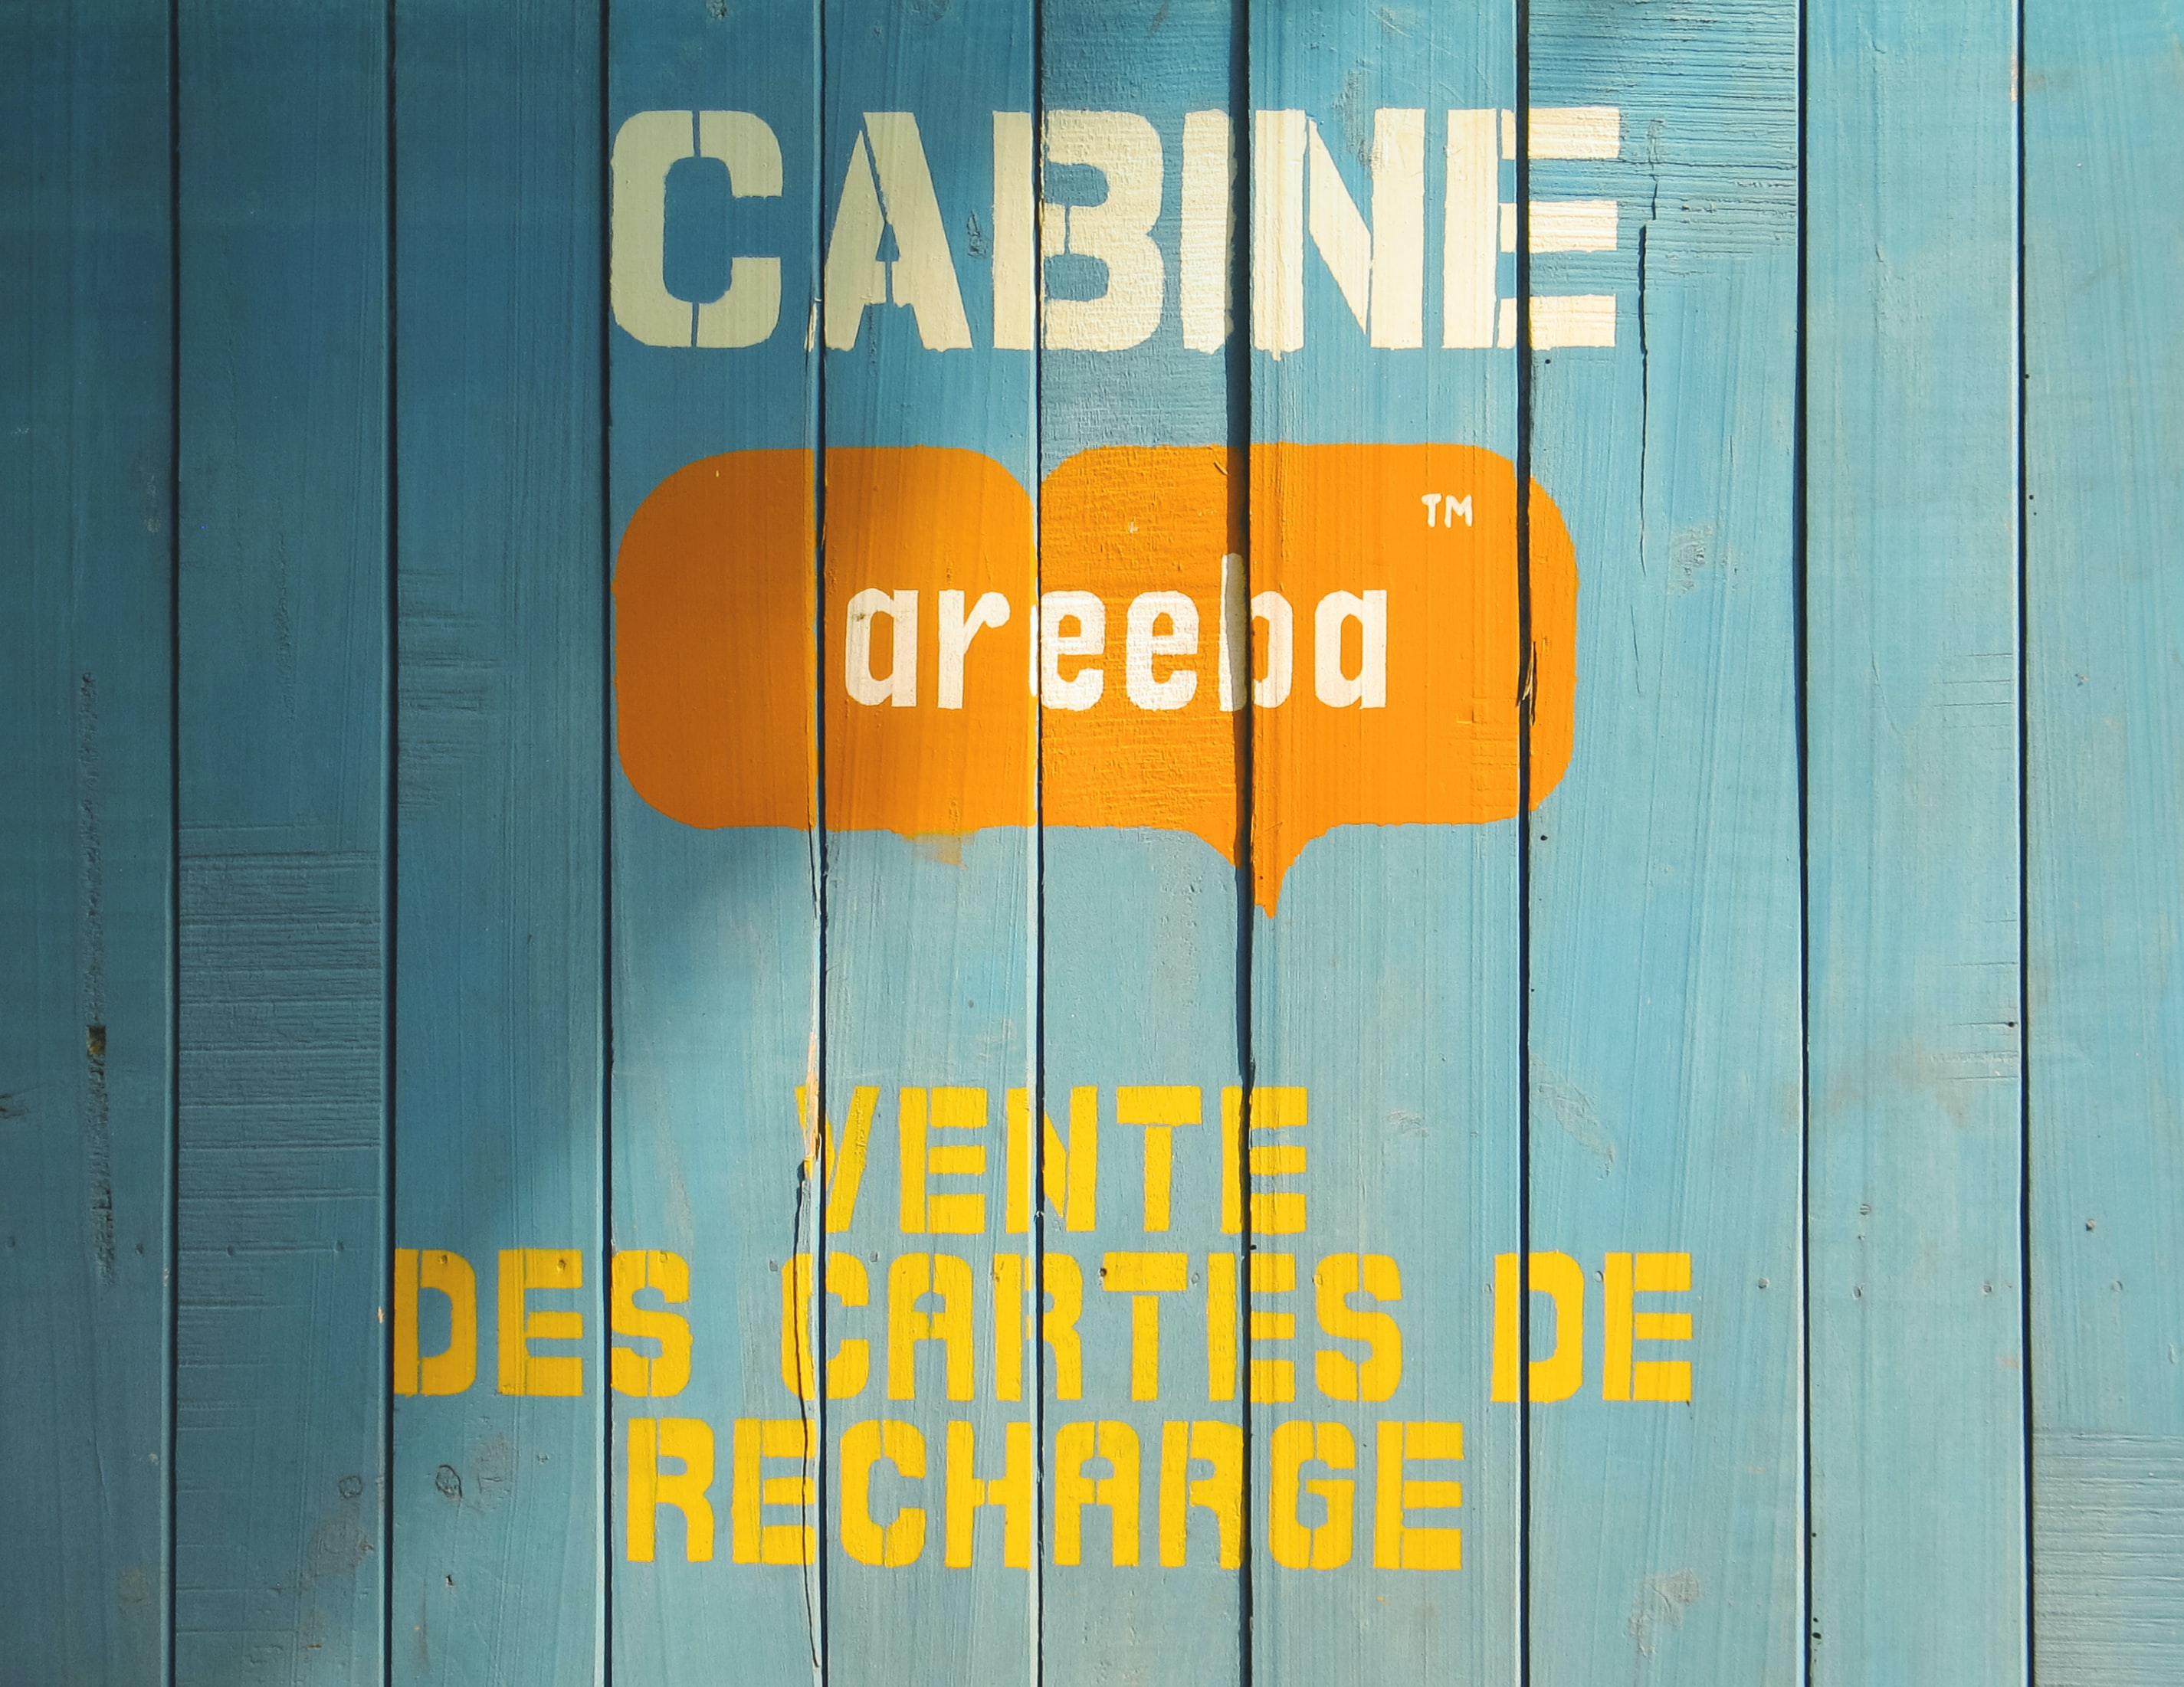 cabine areeba vente des cartes de recharge printed on wooden board